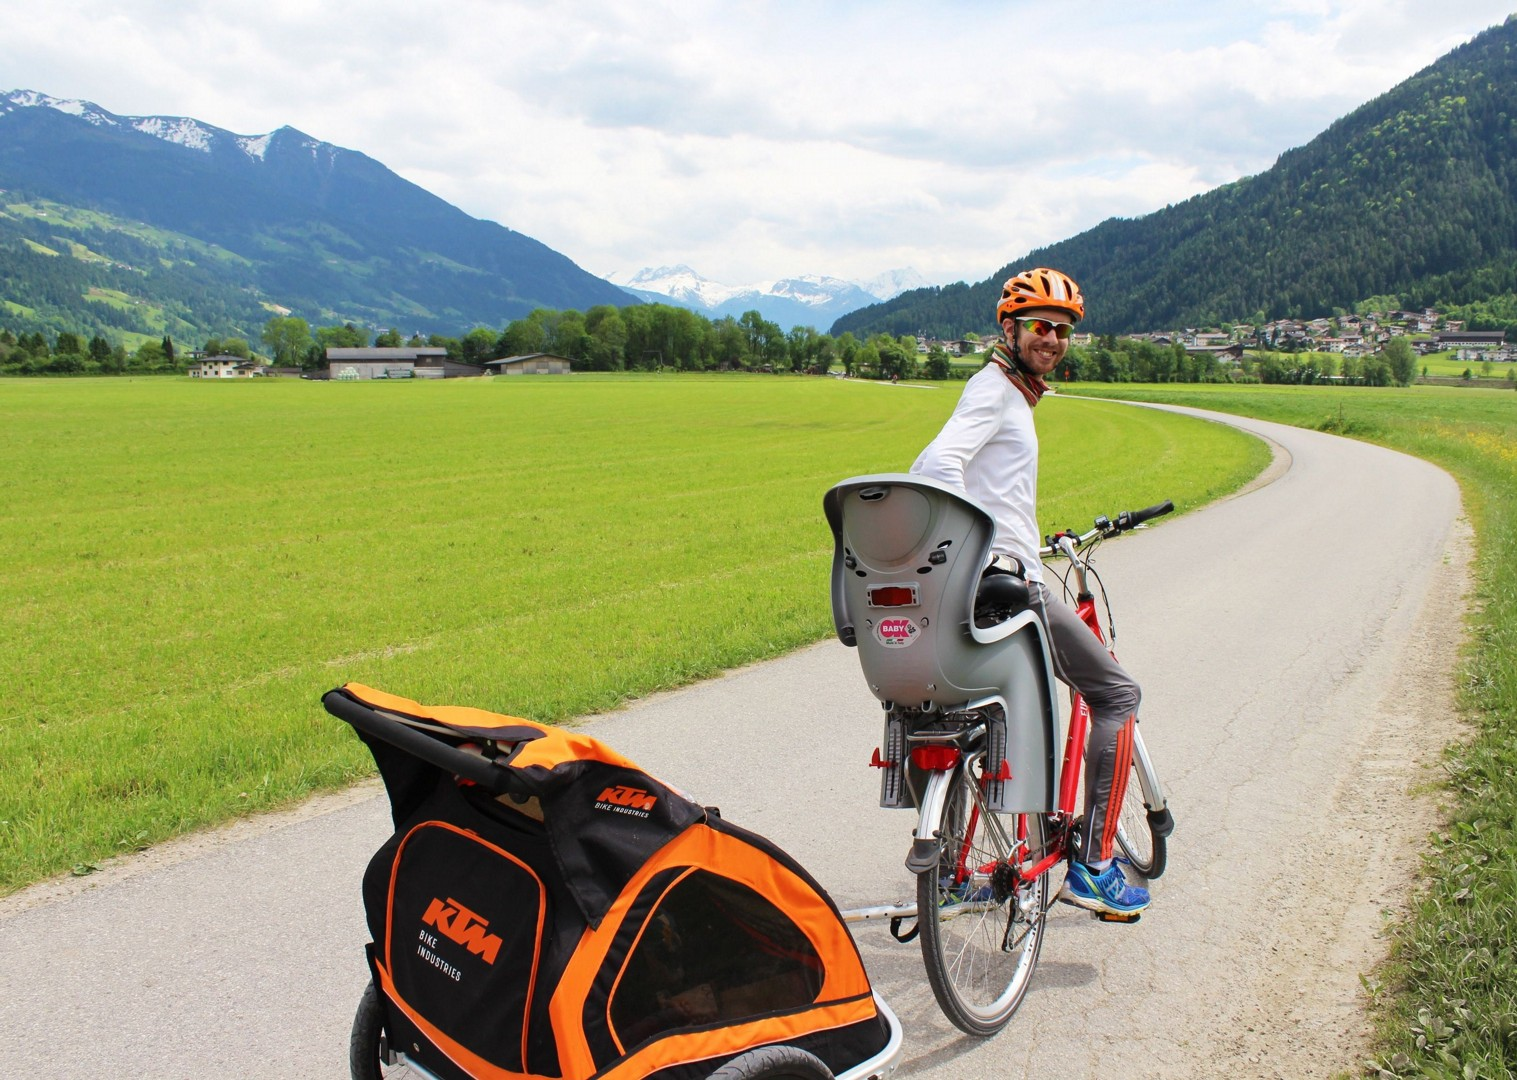 bike-child-tag-along-austria-mountains-family.jpg - Austria - Tauern Valleys - Self-Guided Family Cycling Holiday - Family Cycling